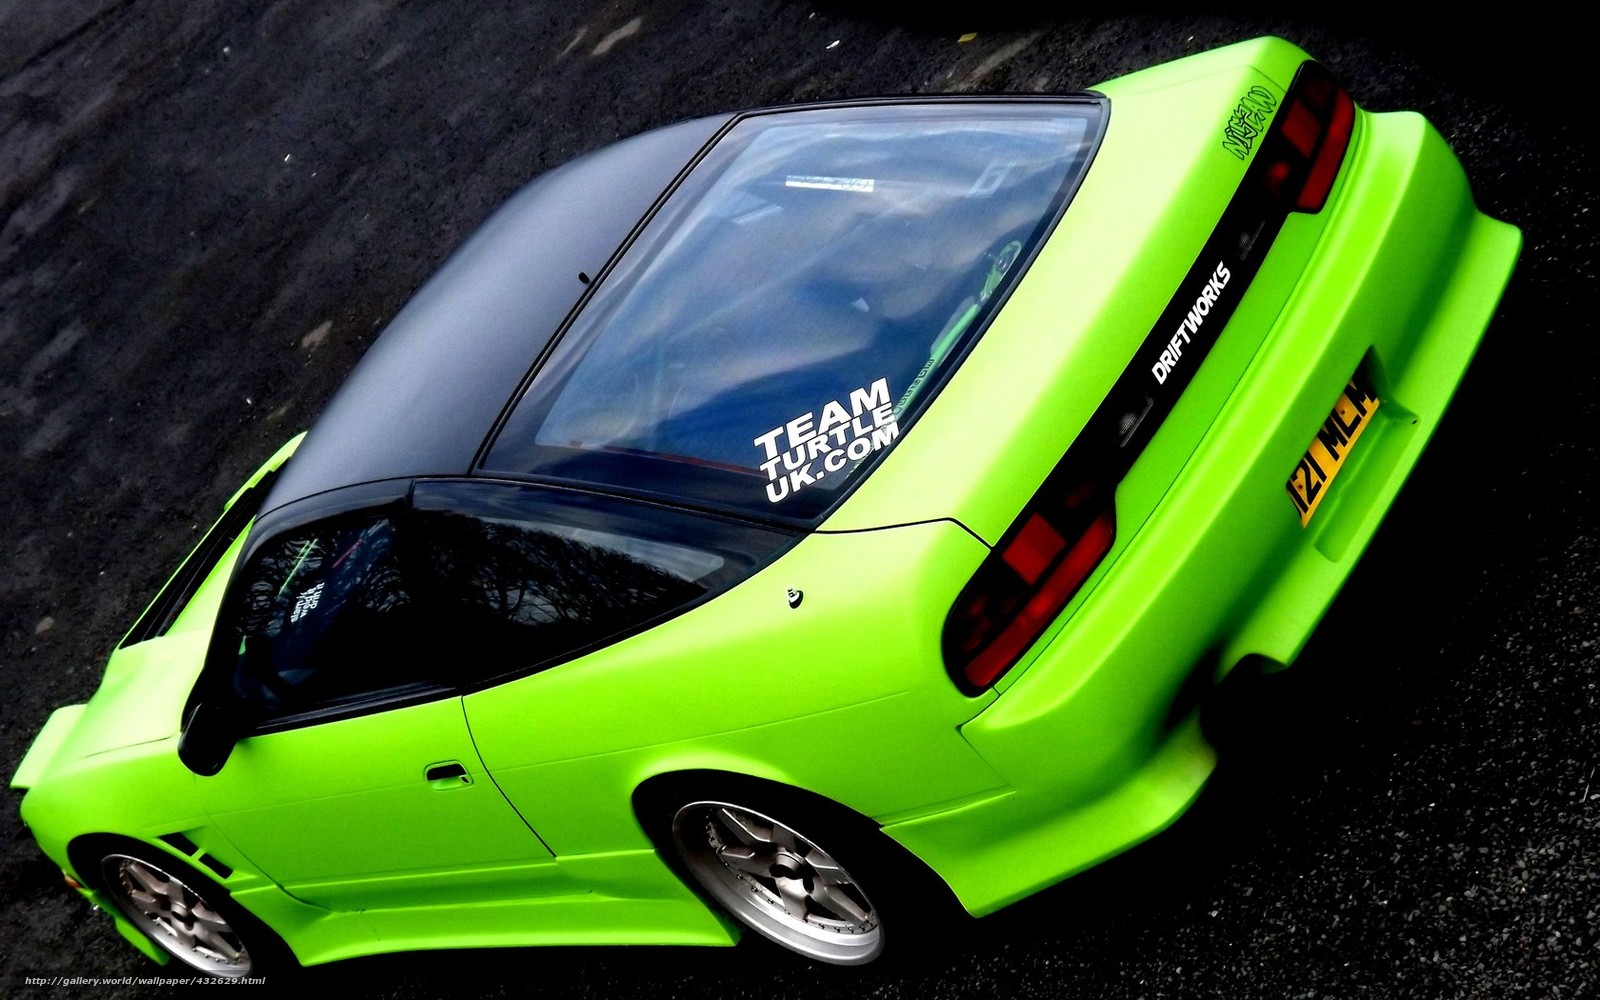 Sports Car Images Free Download